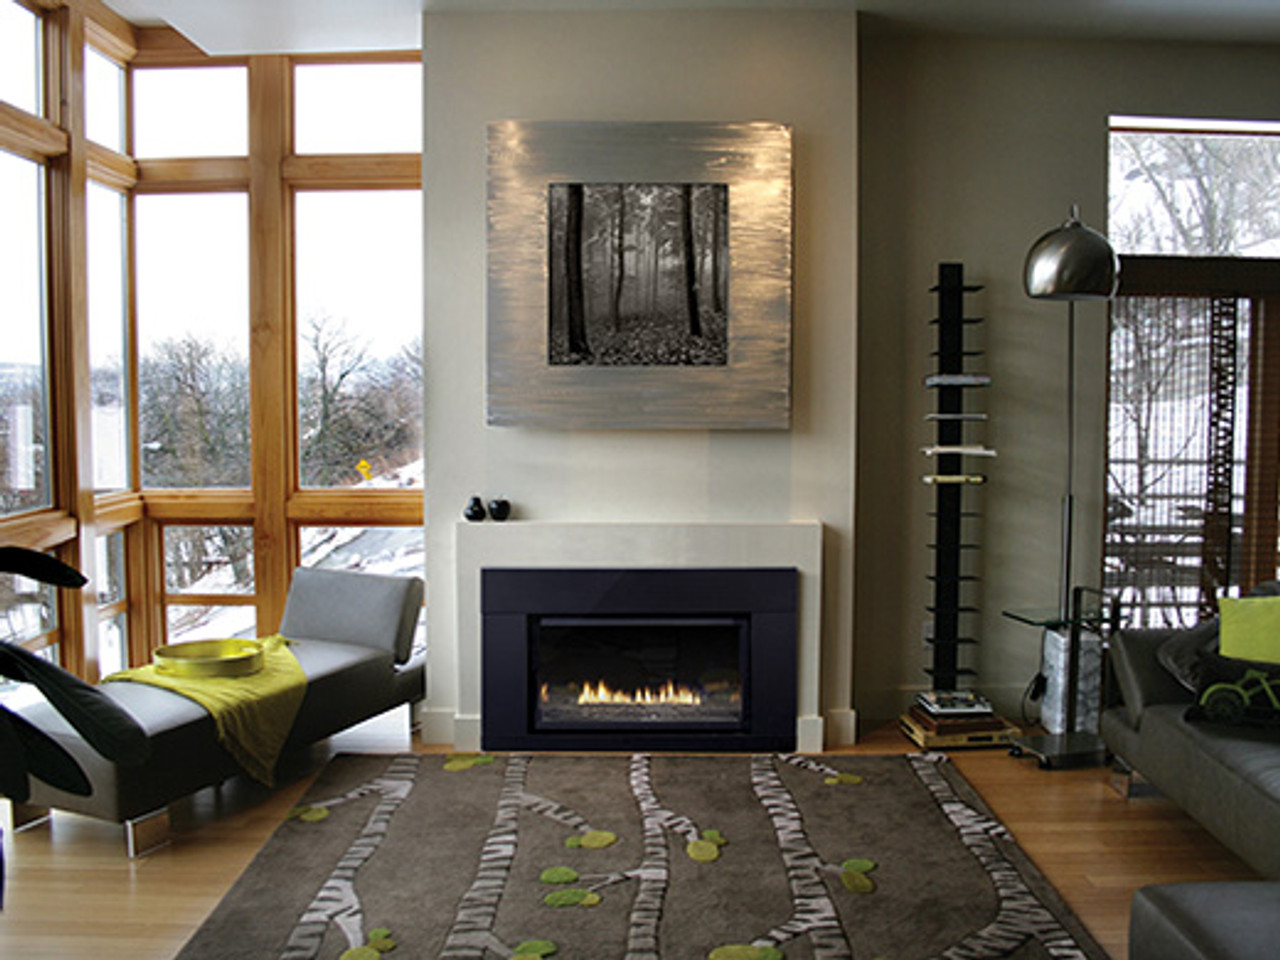 Loft Series Direct-Vent Fireplace Insert - Millivolt Control with On/Off Switch - Small - DVL25IN33